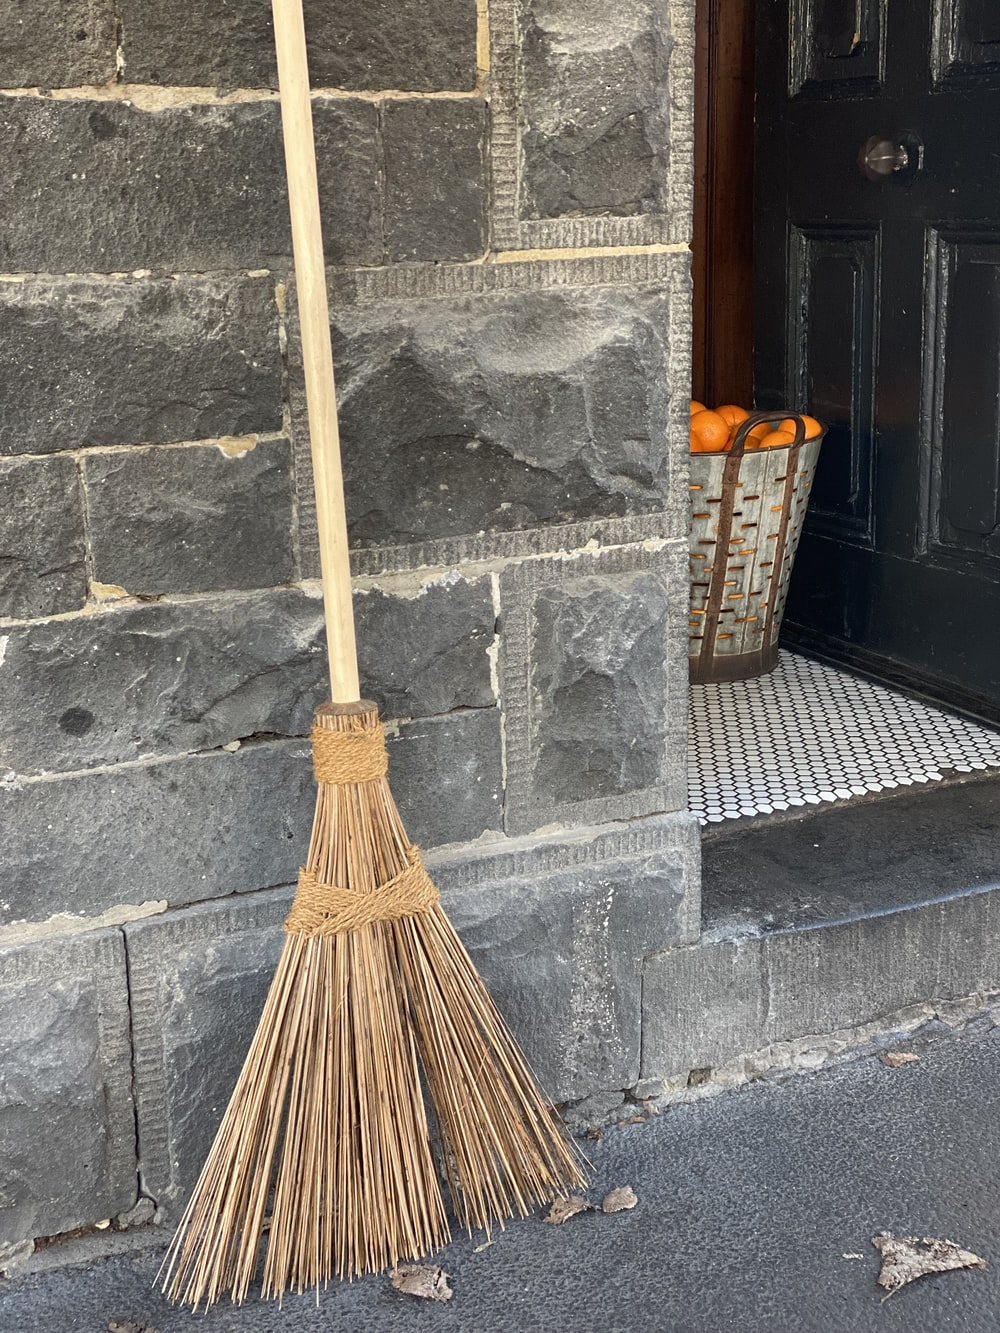 brown broom leaning on gray concrete wall